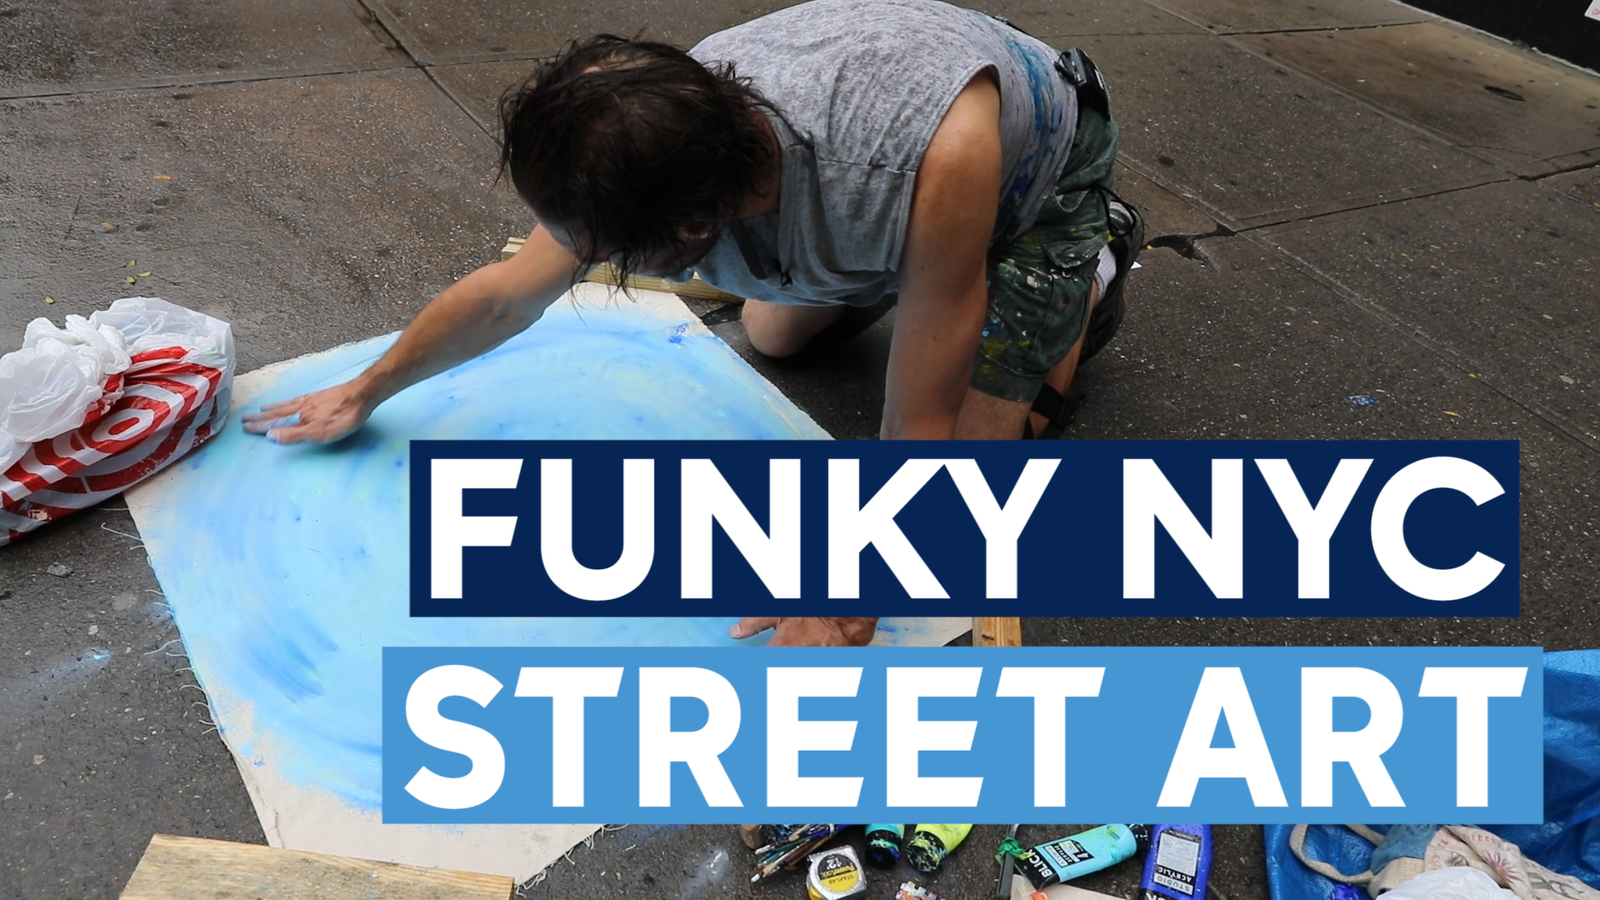 Paul Carluccio the 'Manhole impressionist' paints incredible street art all over NYC streets